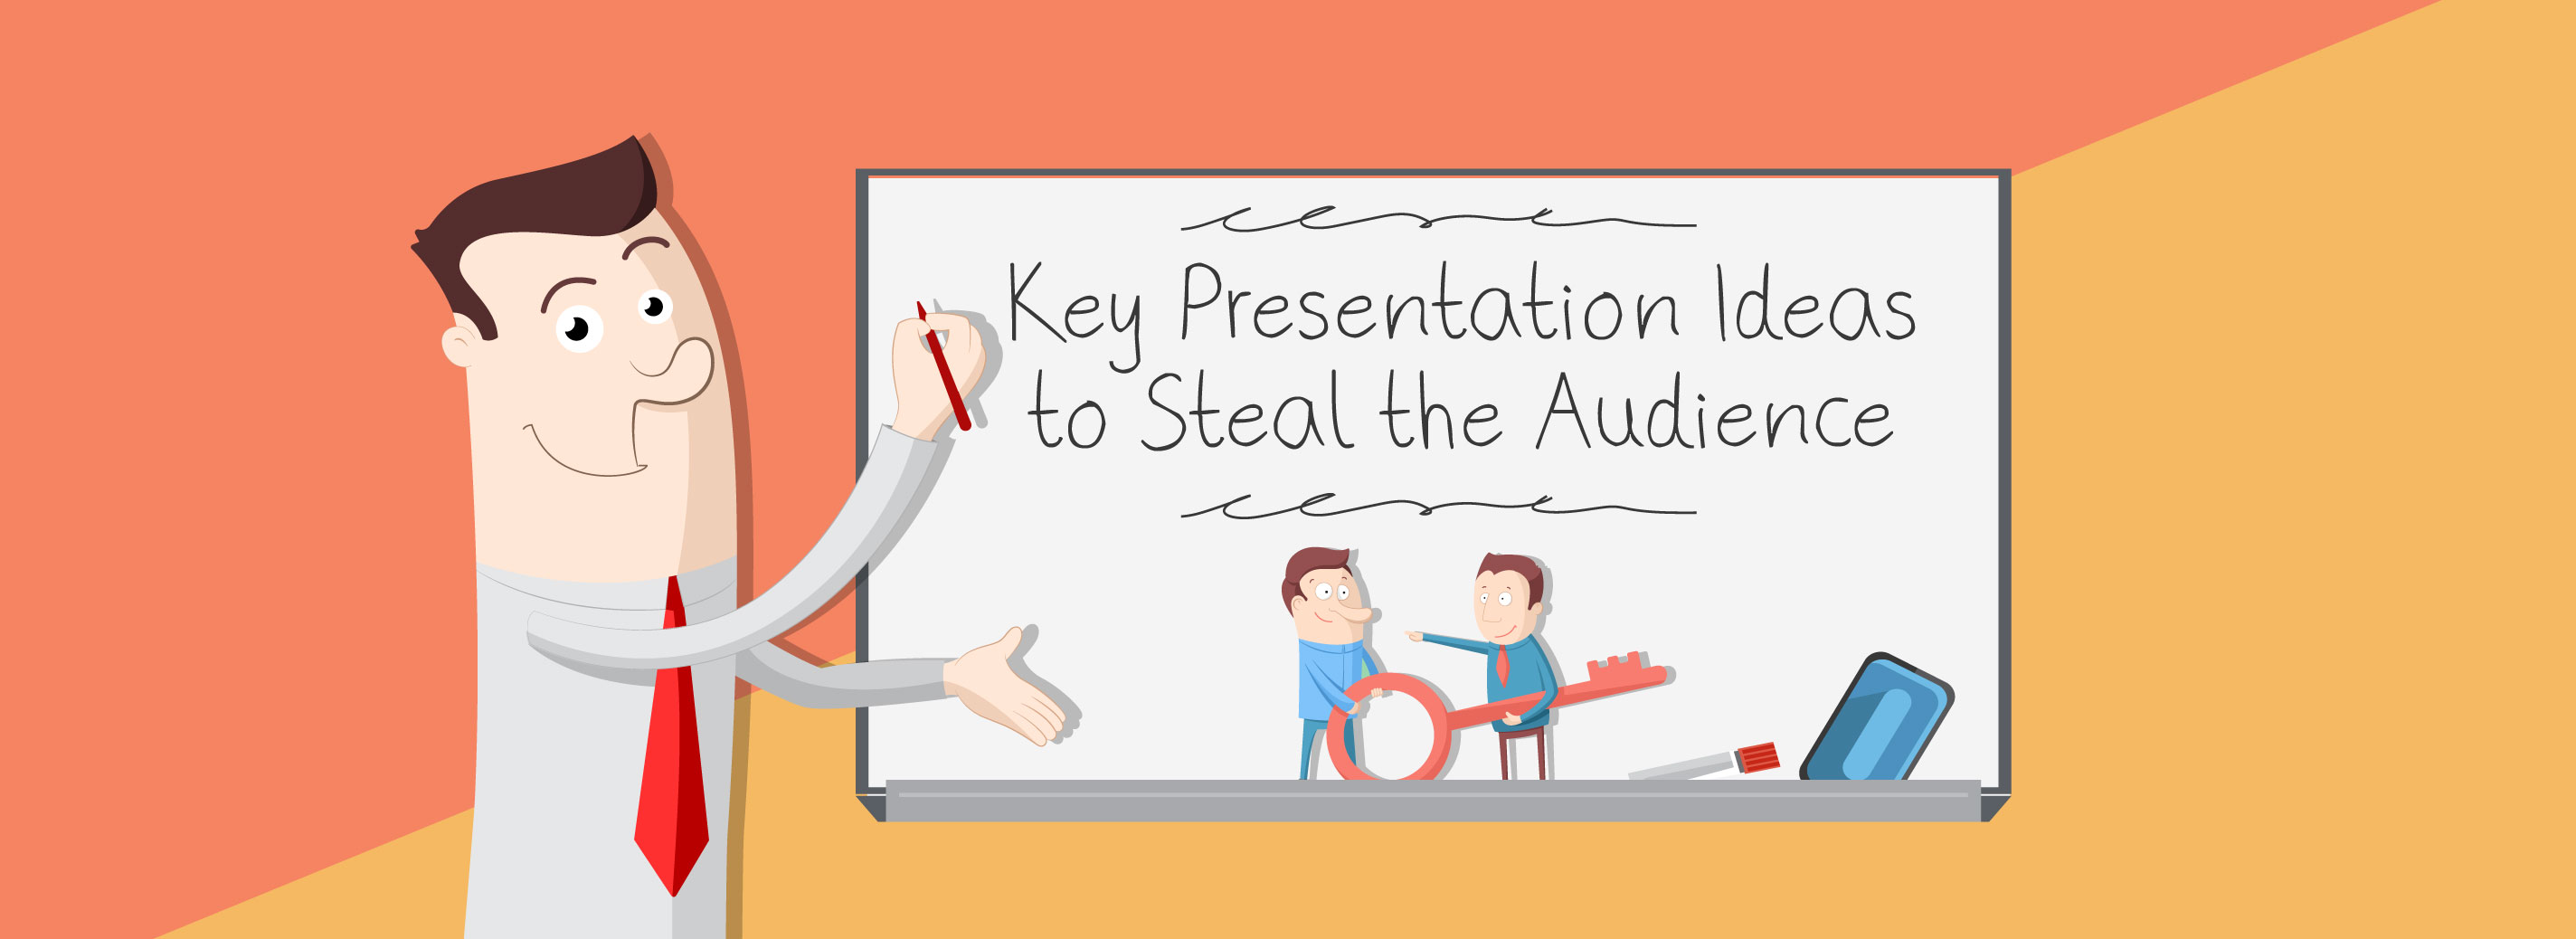 The Key Presentation Ideas to Steal the Audience